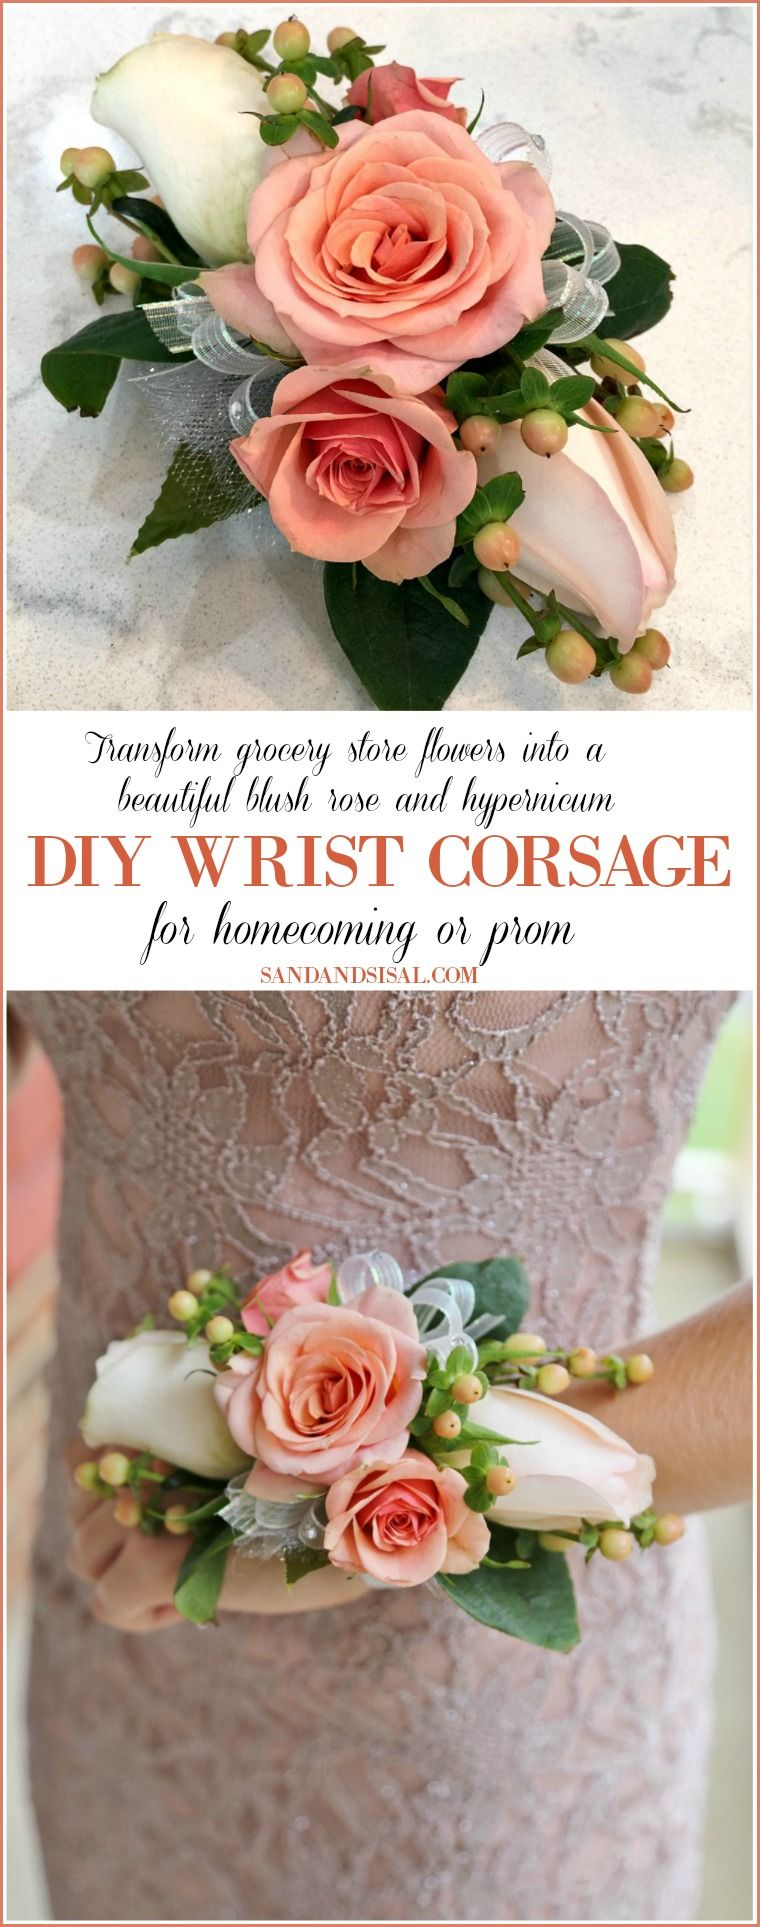 Diy wrist corsage for or prom